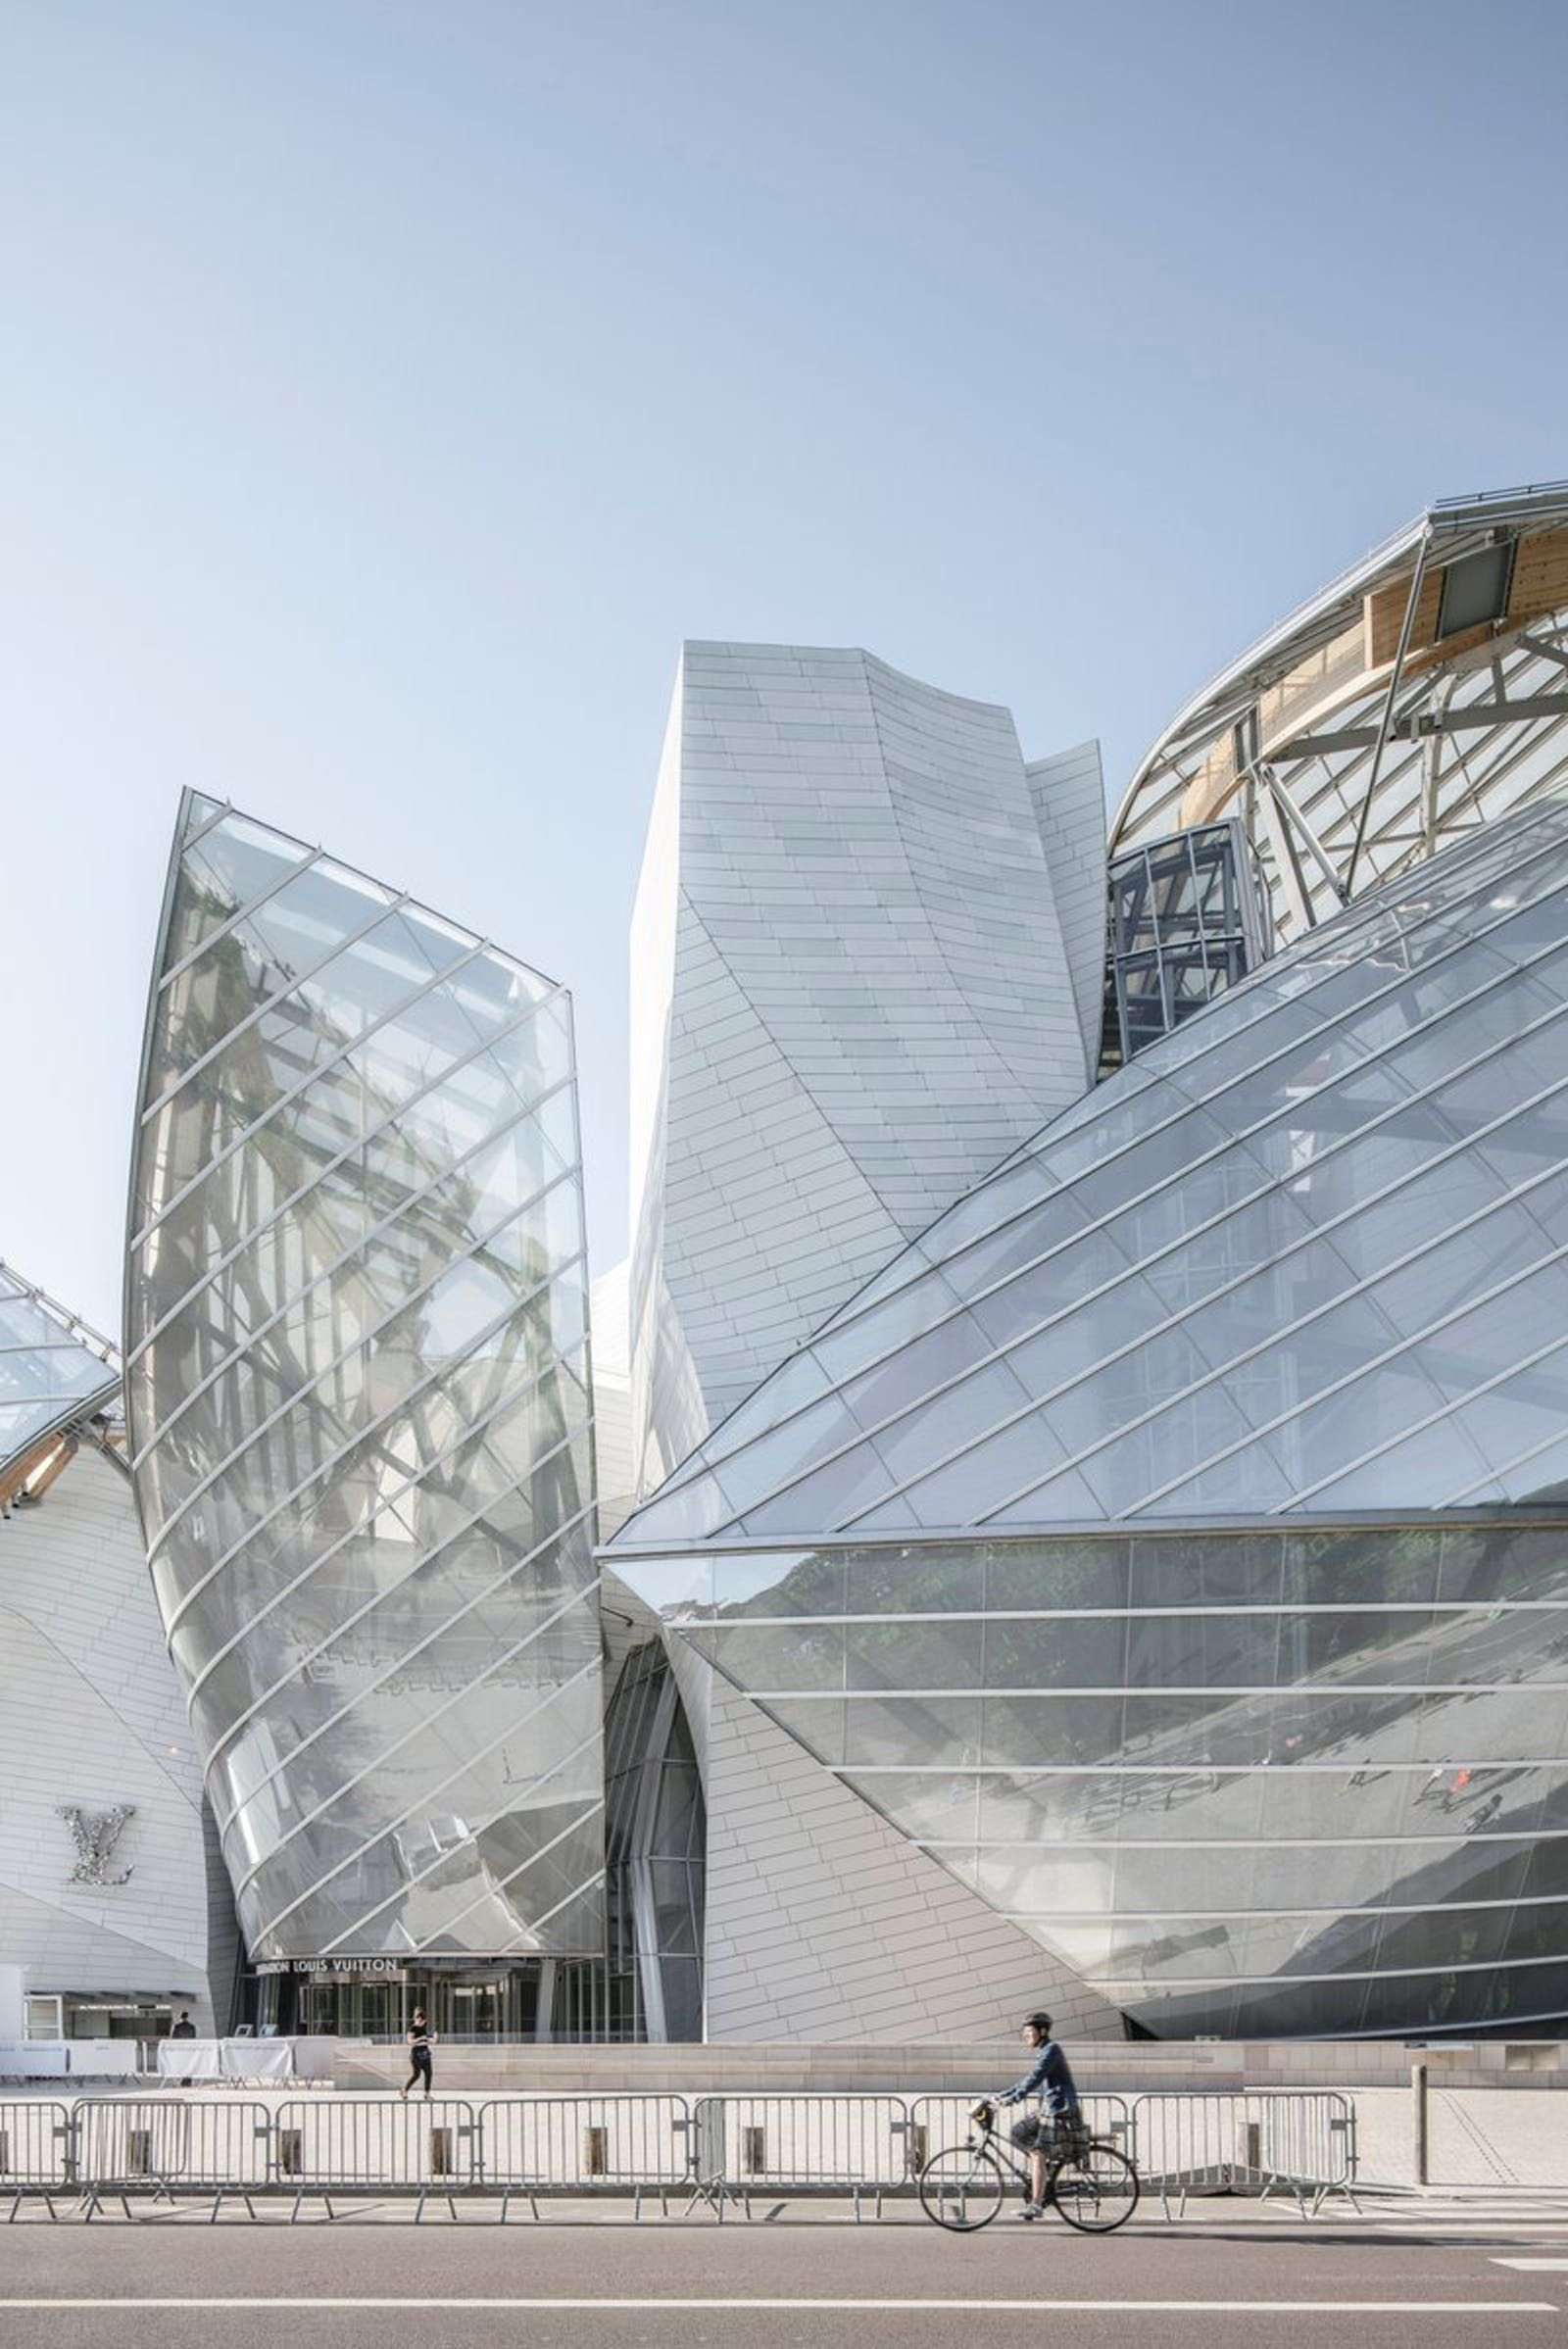 da4cde2c720 7 winning photos of Frank Gehry's Fondation Louis Vuitton Building ...